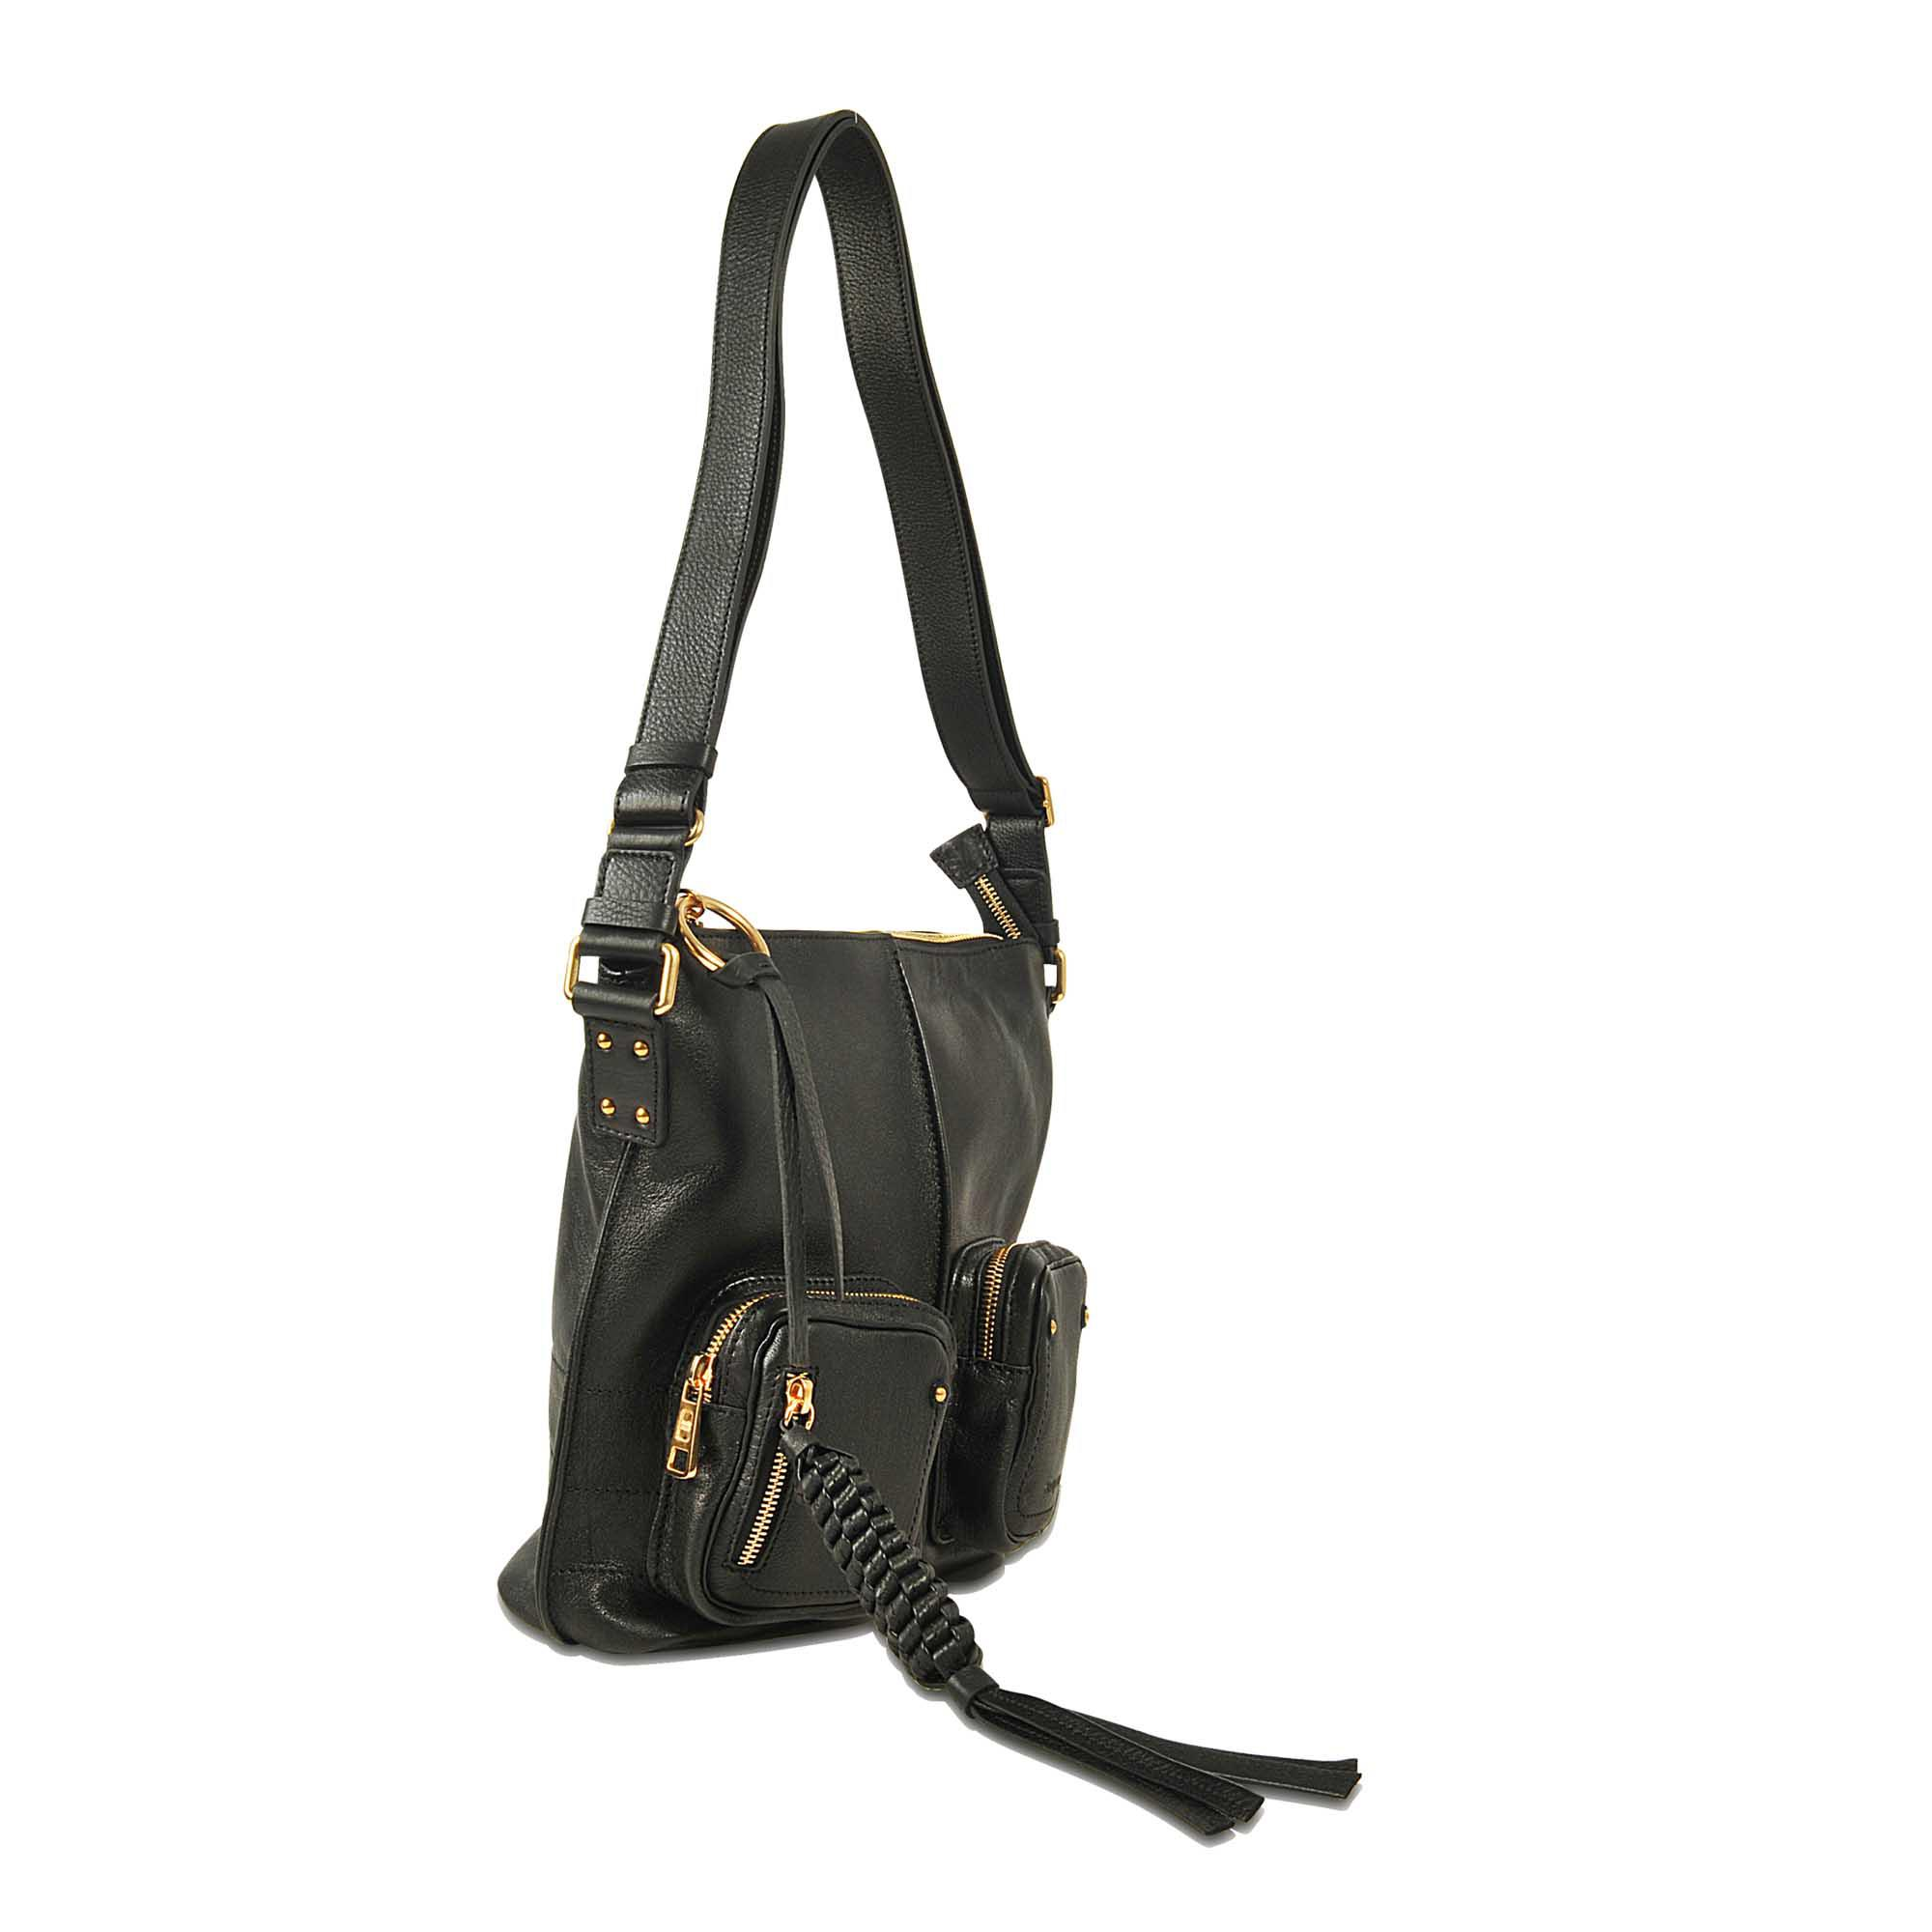 17eeb11689b4 Lyst - See By Chloé Patti Shoulder Bag 9s7879 in Black